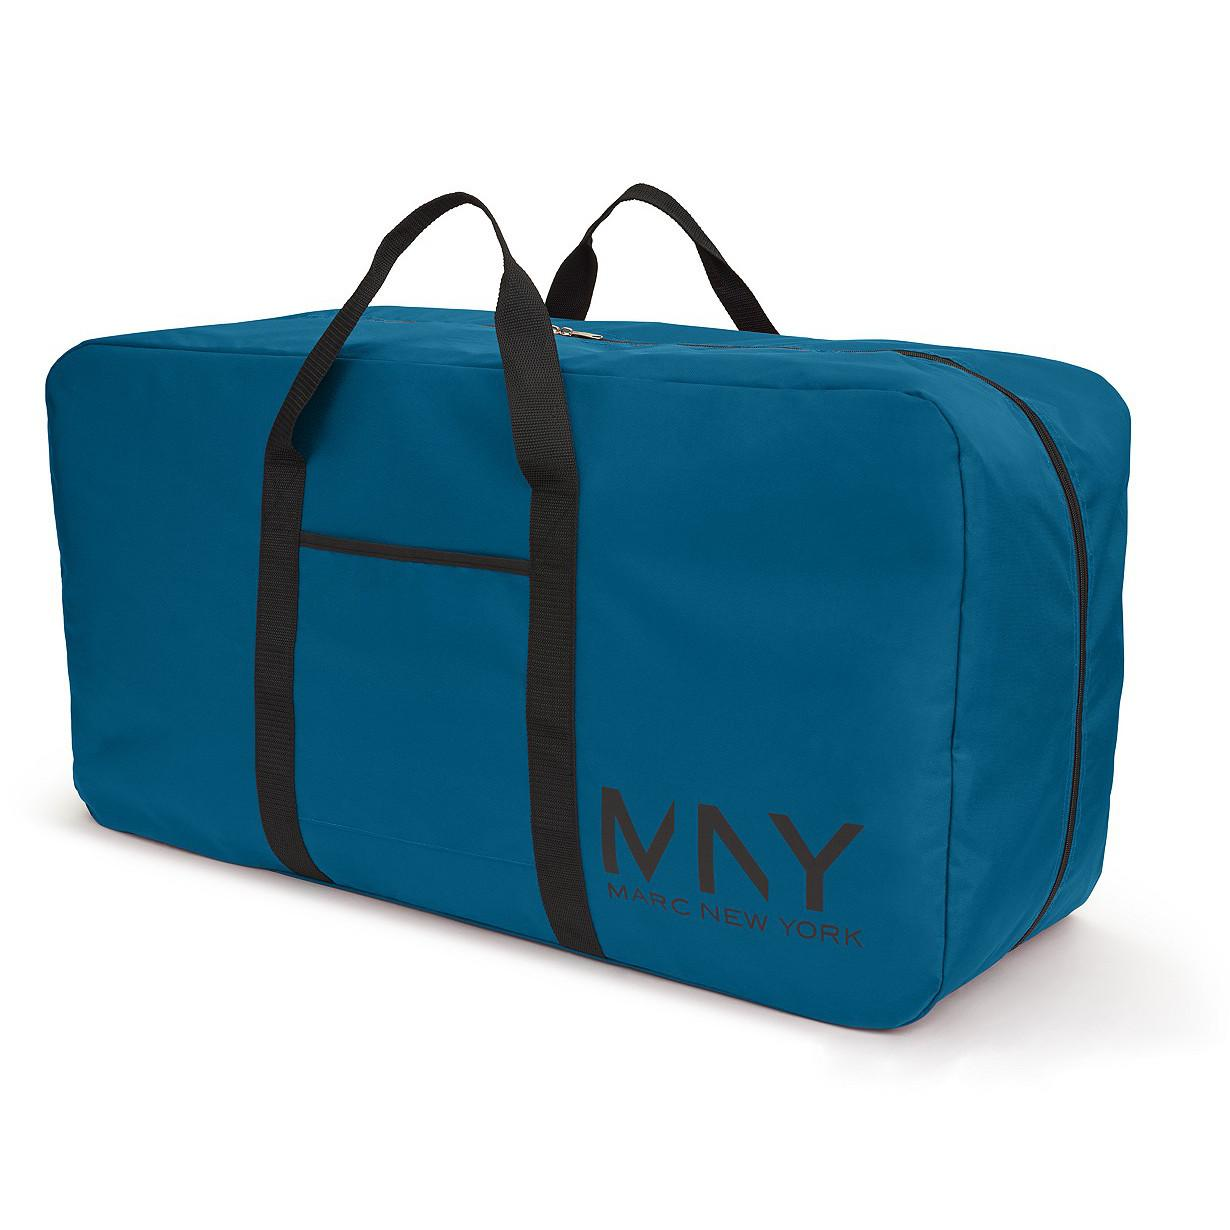 Marc New York Carry A Ton Polyester Duffel Bag